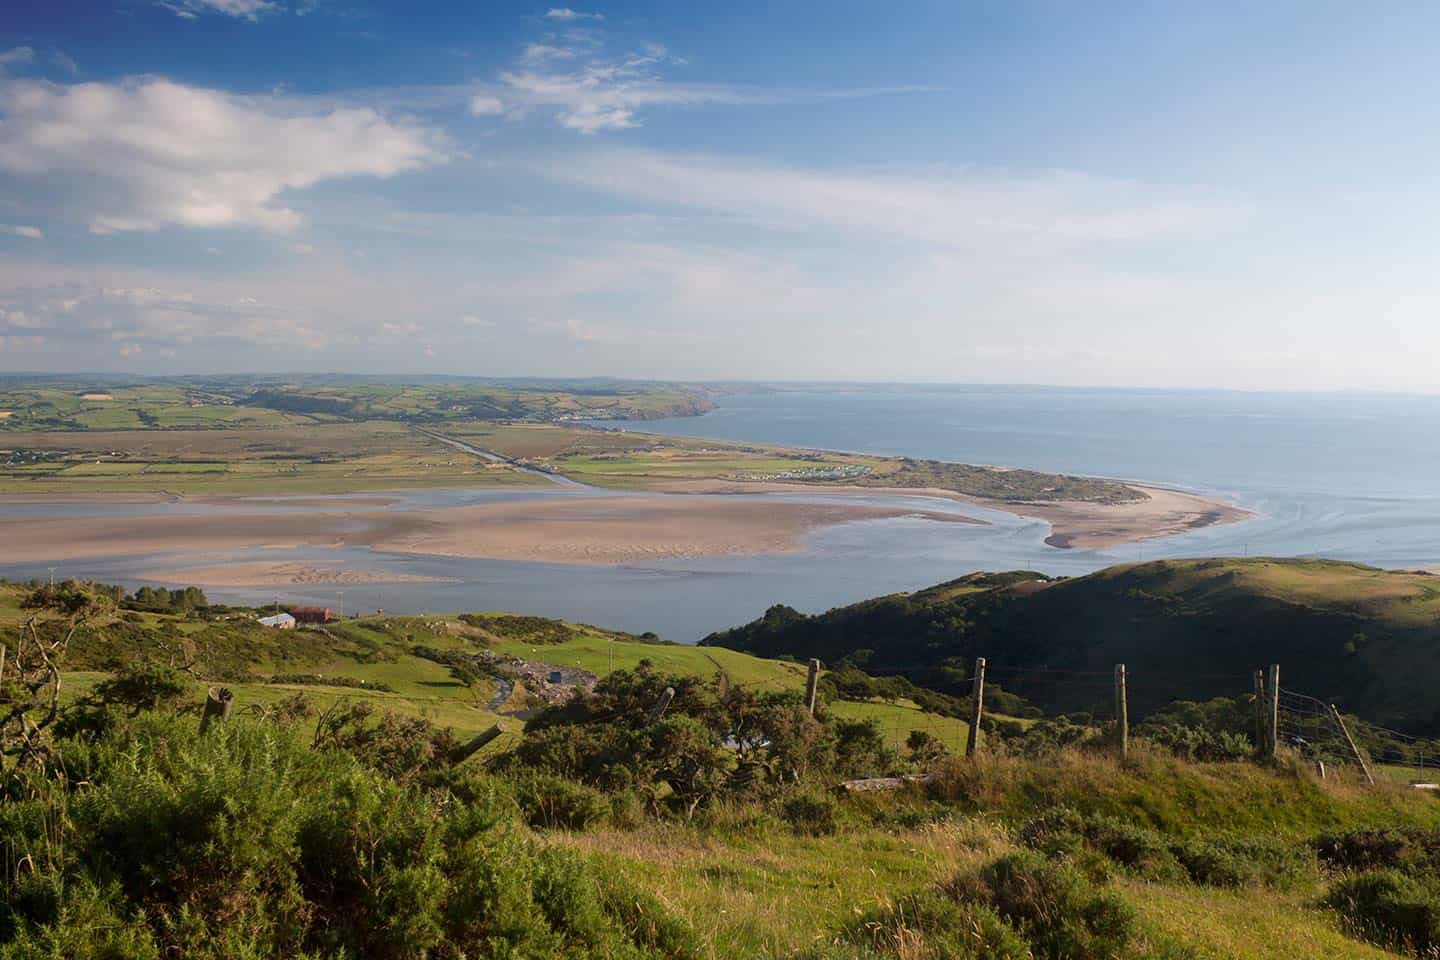 Image of the Dovey estuary, Mid Wales